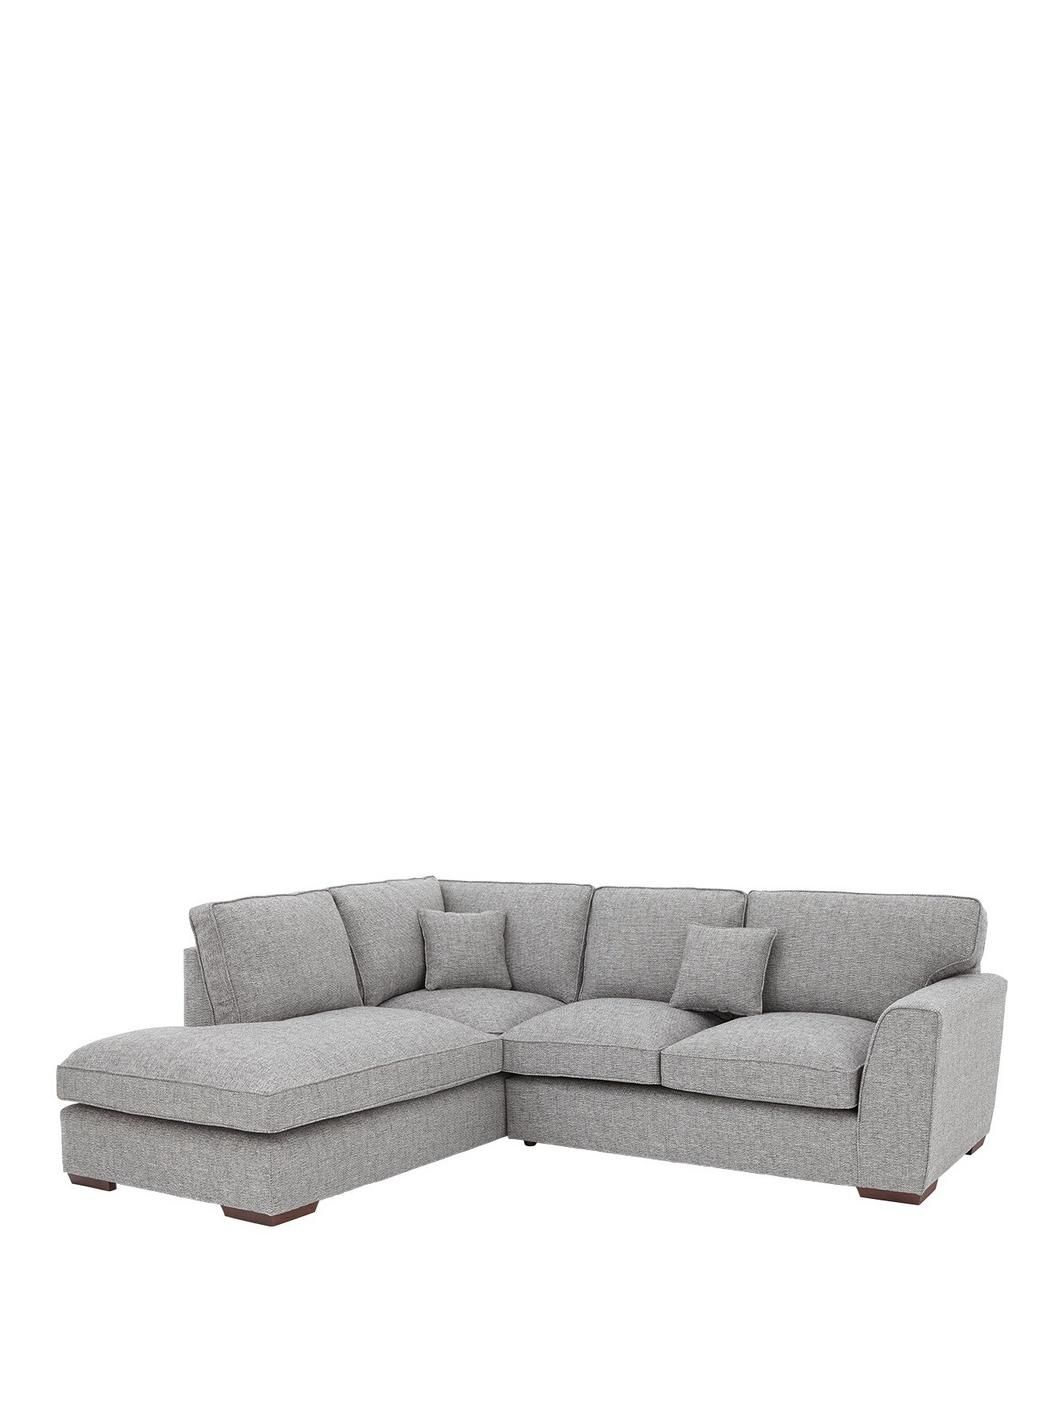 Rio Fabric Left Hand Corner Chaise Sofa Http Www Littlewoods